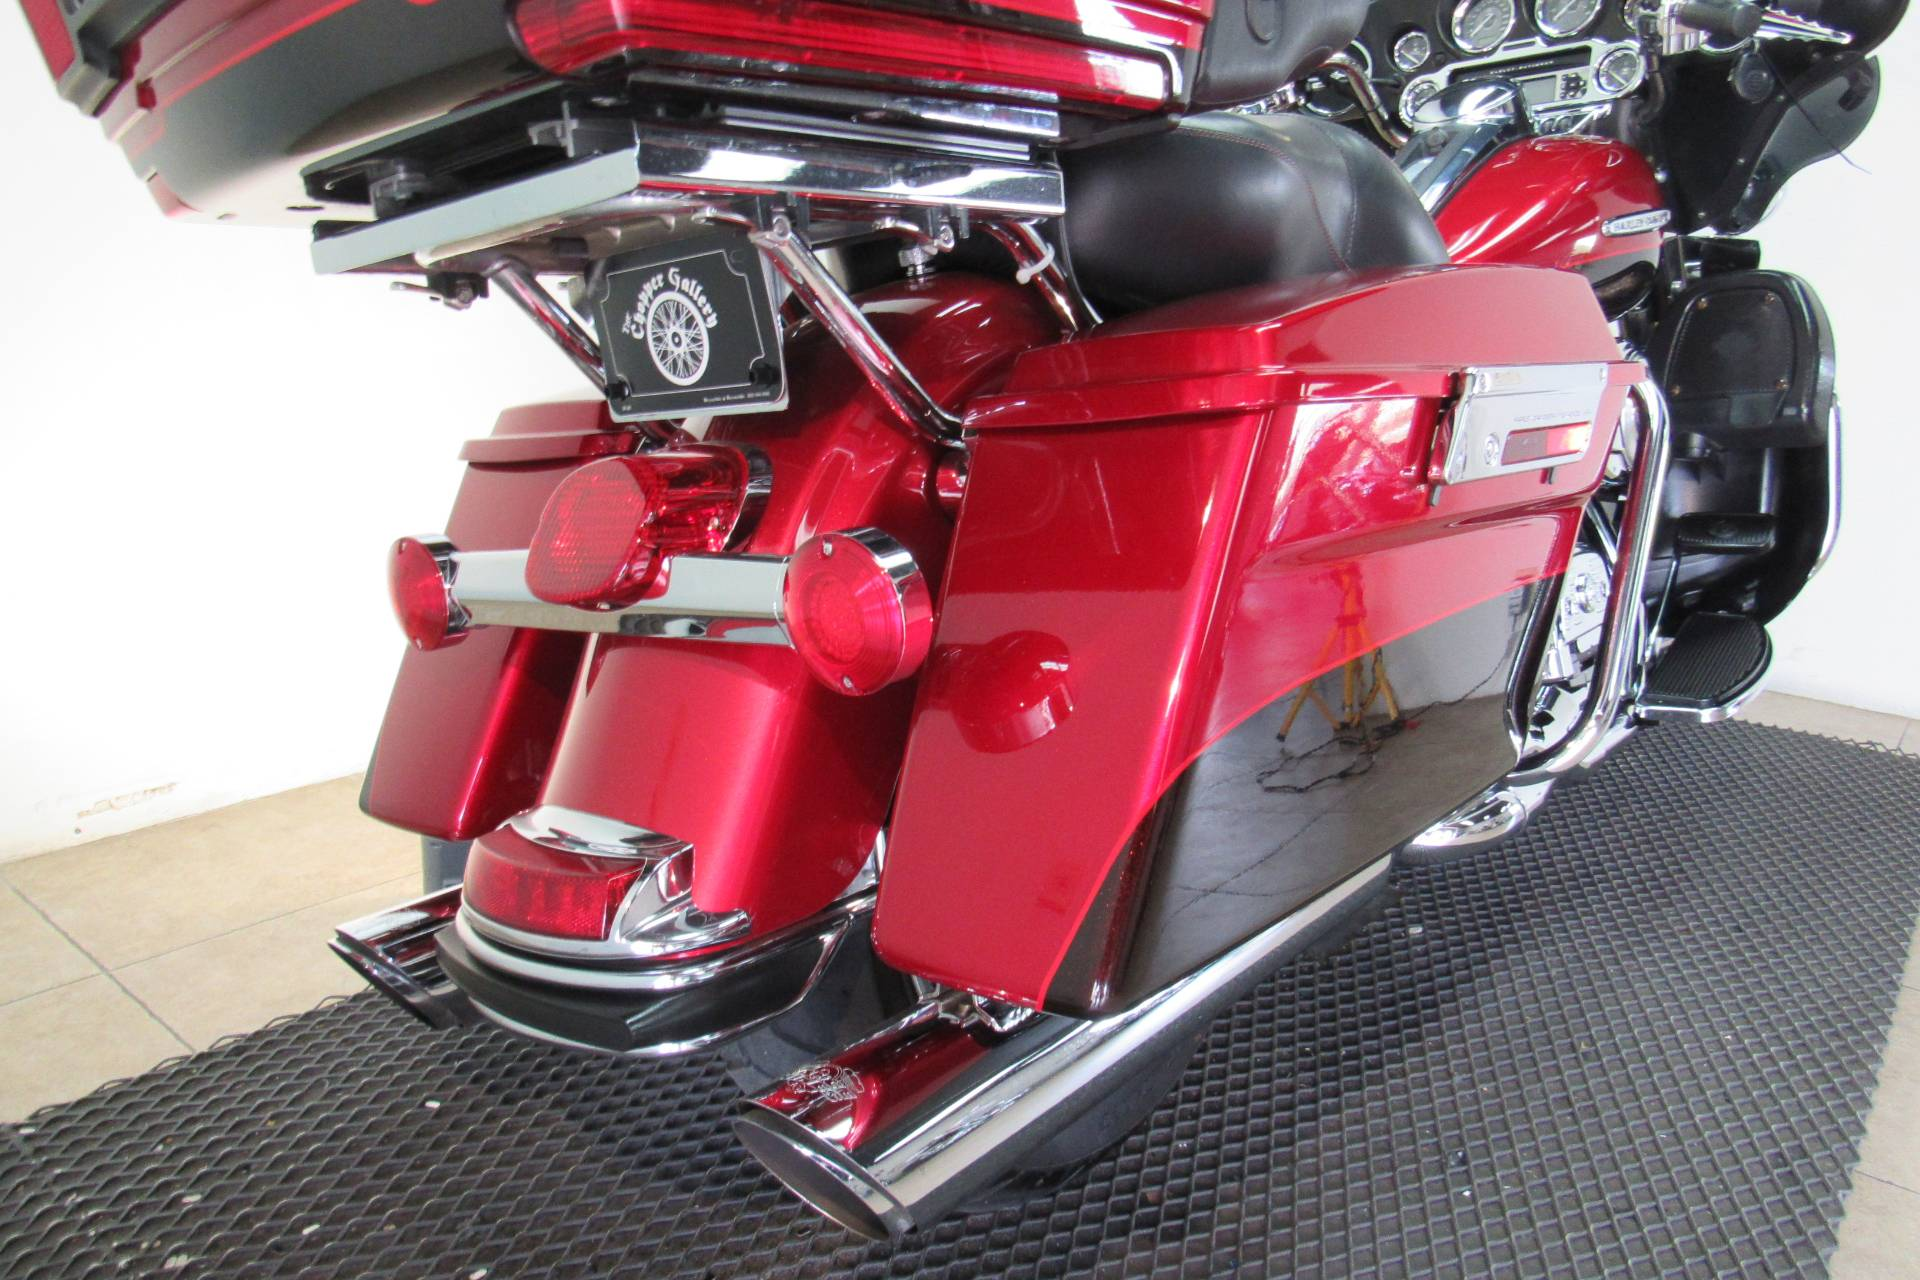 2012 Harley-Davidson Electra Glide® Ultra Limited in Temecula, California - Photo 25